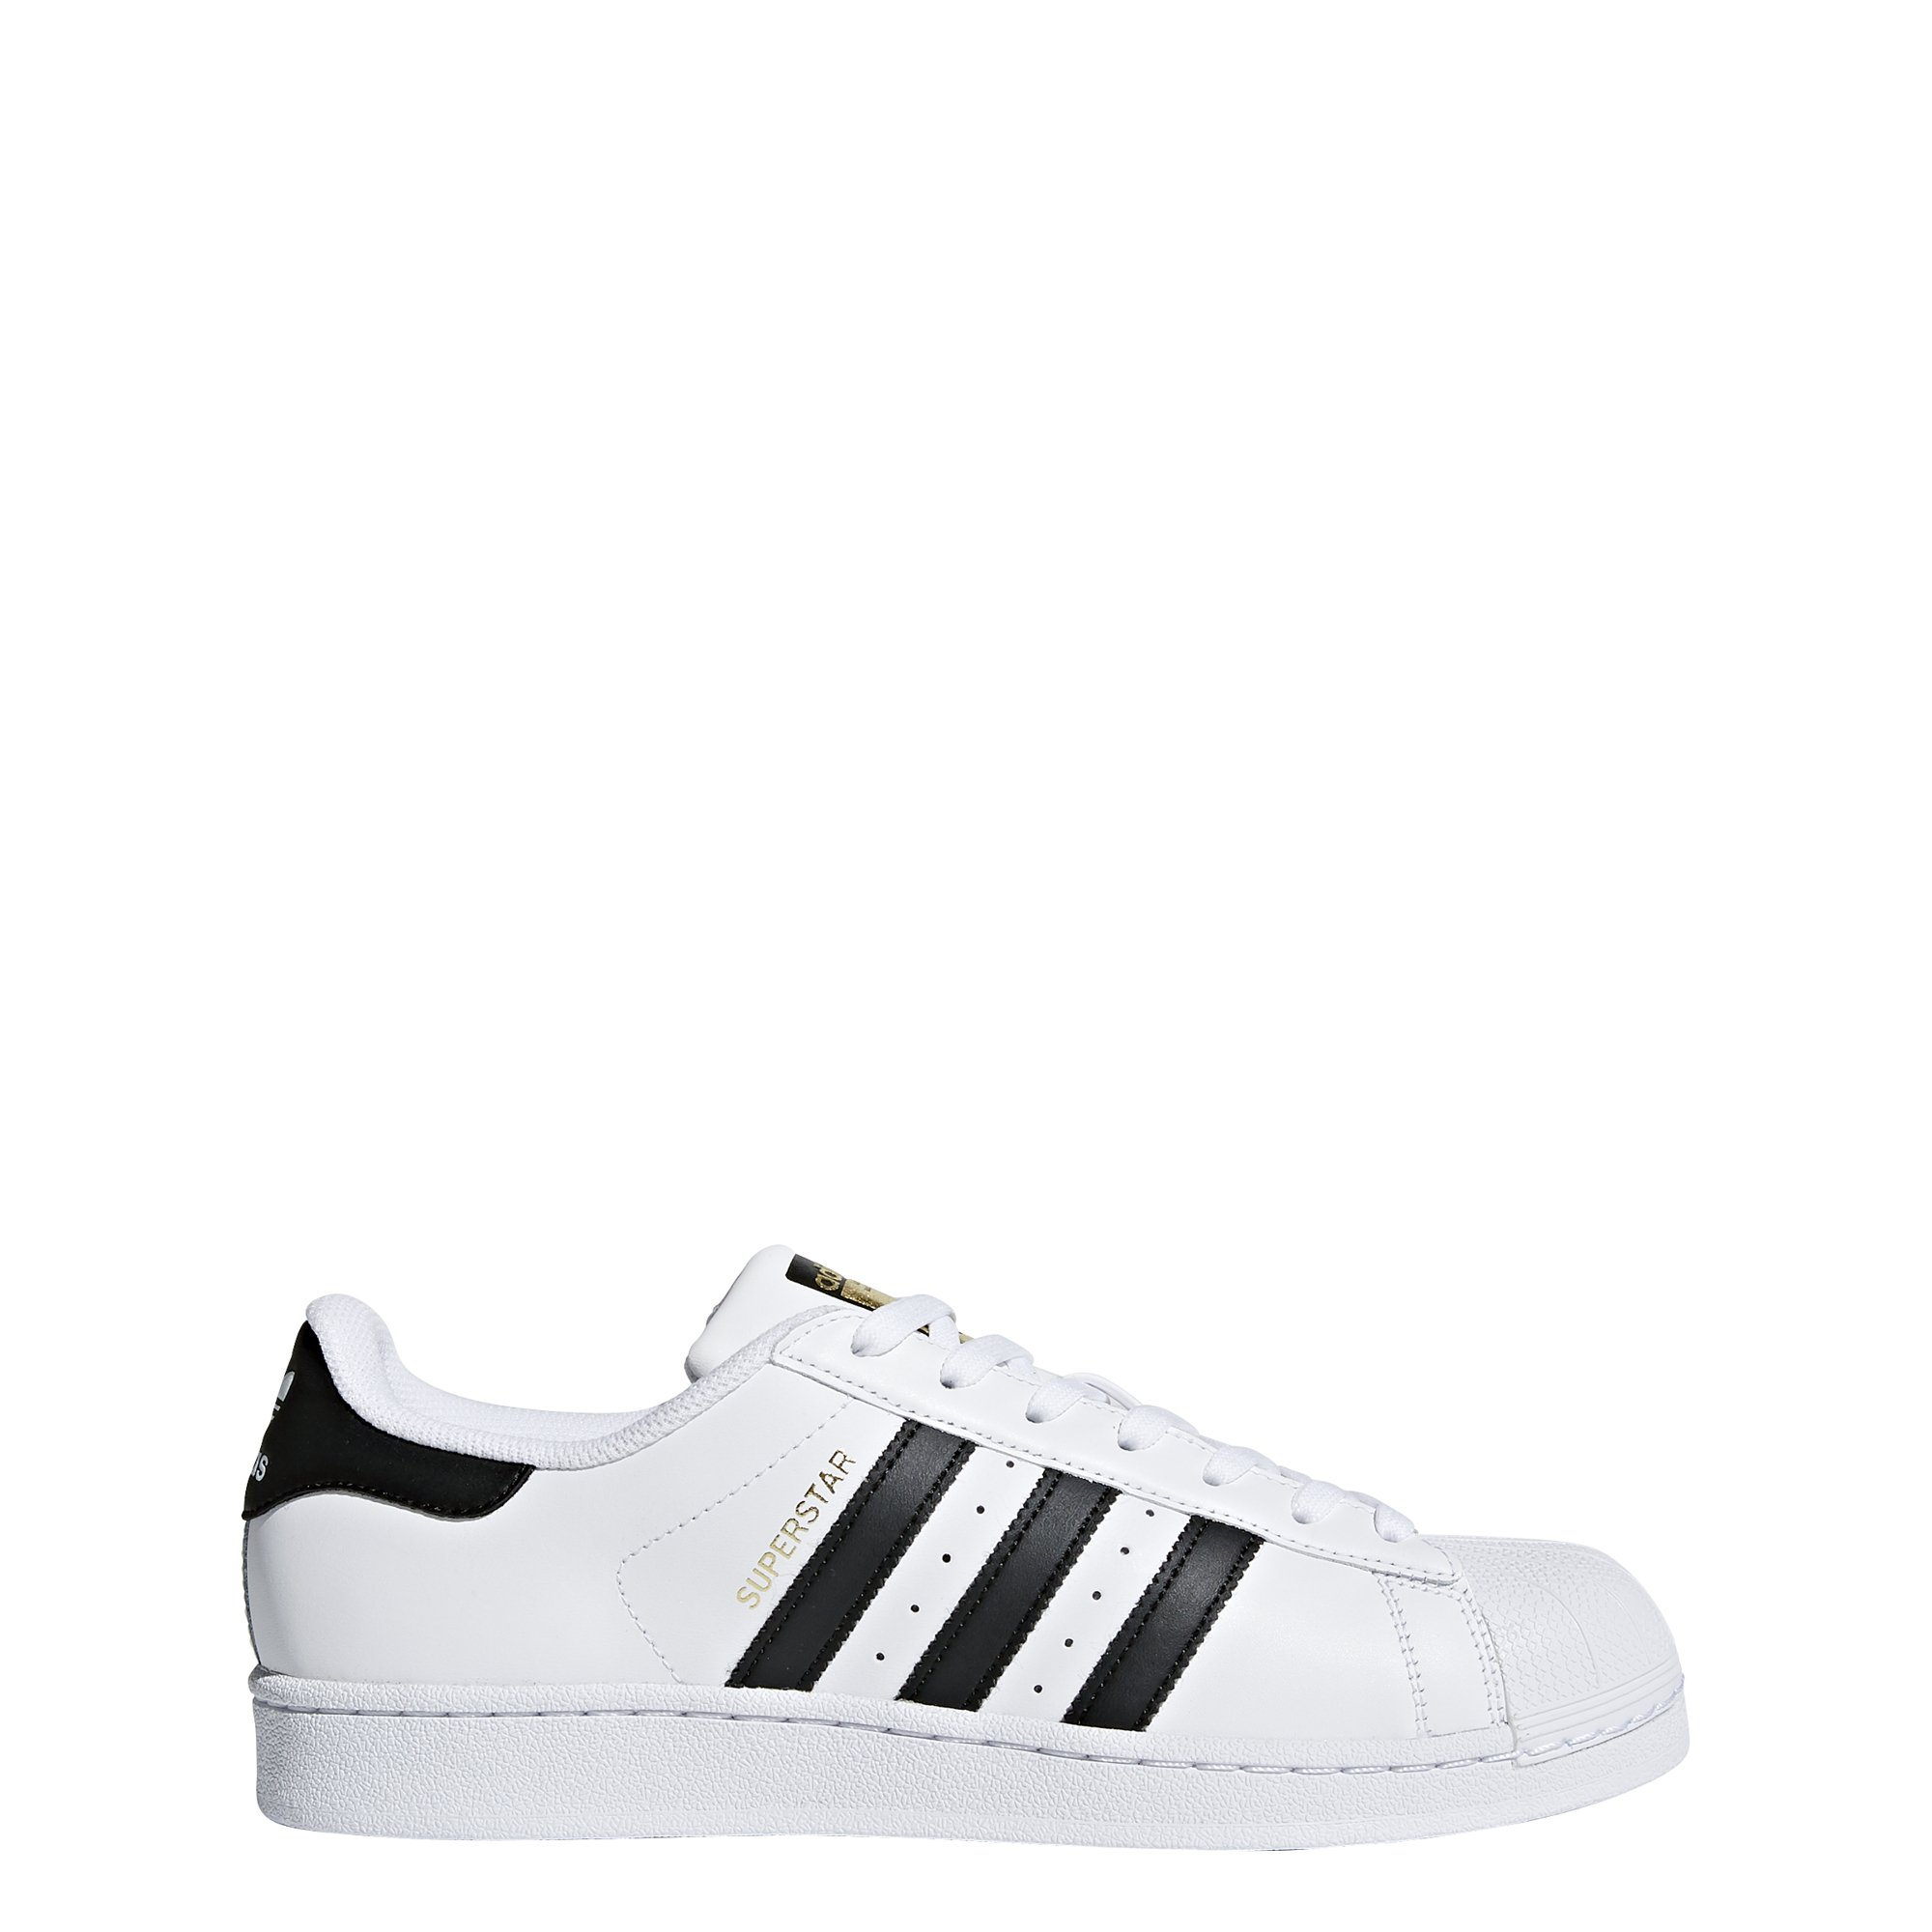 adidas Originals Men's Superstar Shoes White/Core Black/White 10.5 D(M) US by adidas Originals